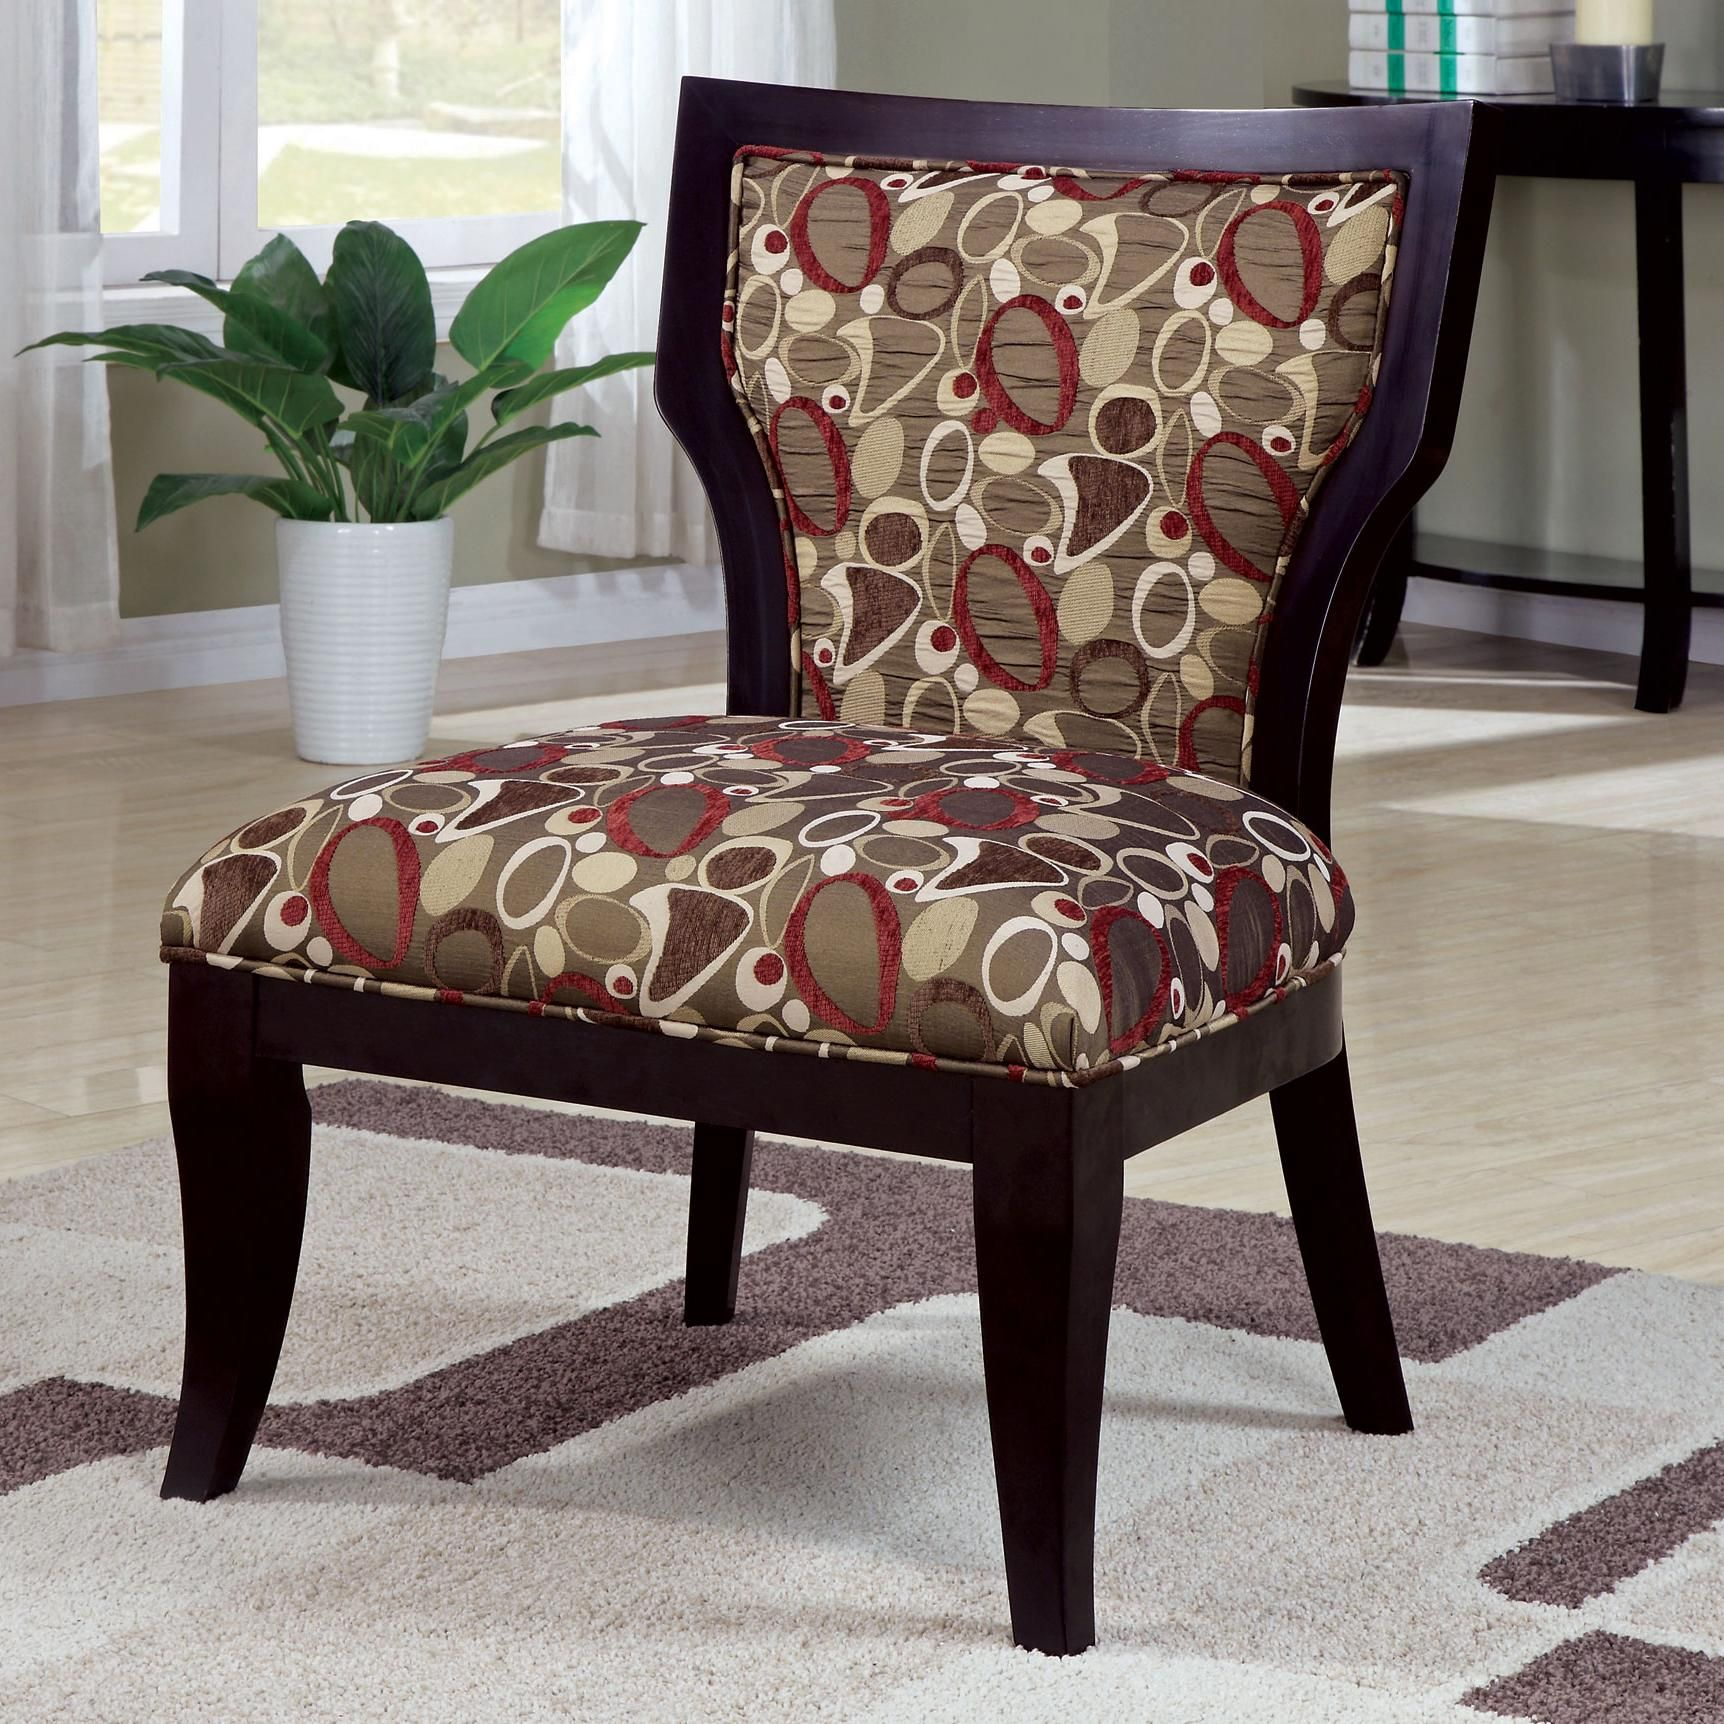 Accent Seating Accent Chair by Coaster Home decor ideas on